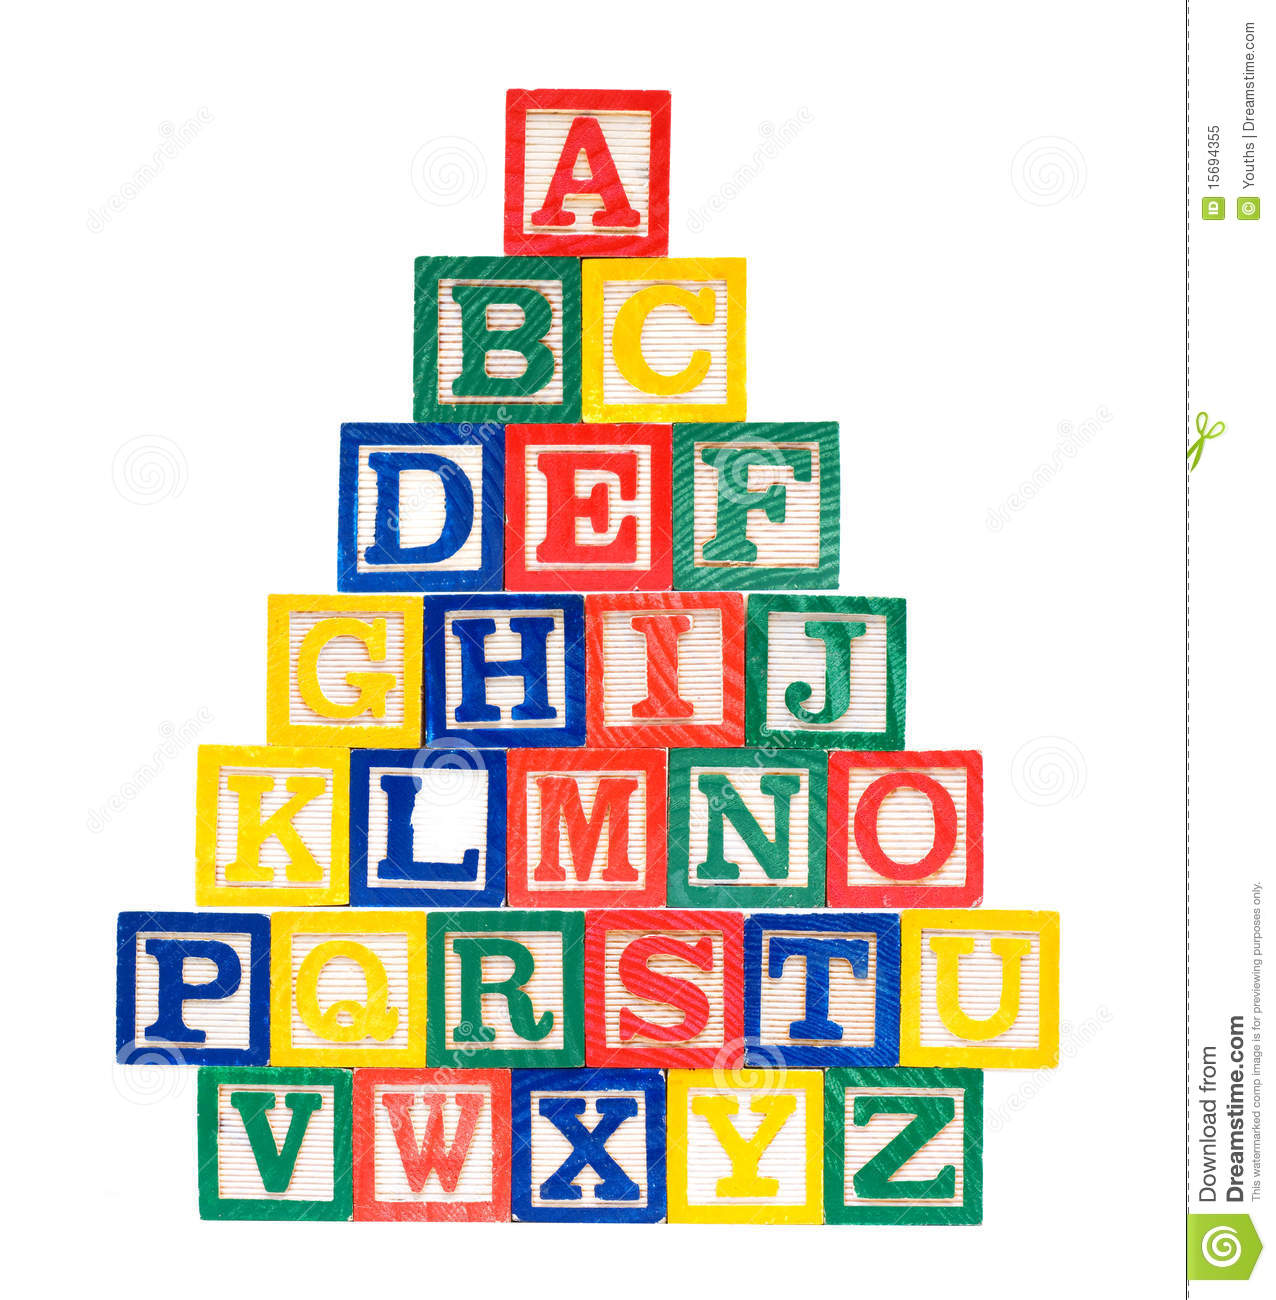 Clipart of wooden blocks with alphabet letter. Clipartfest royalty